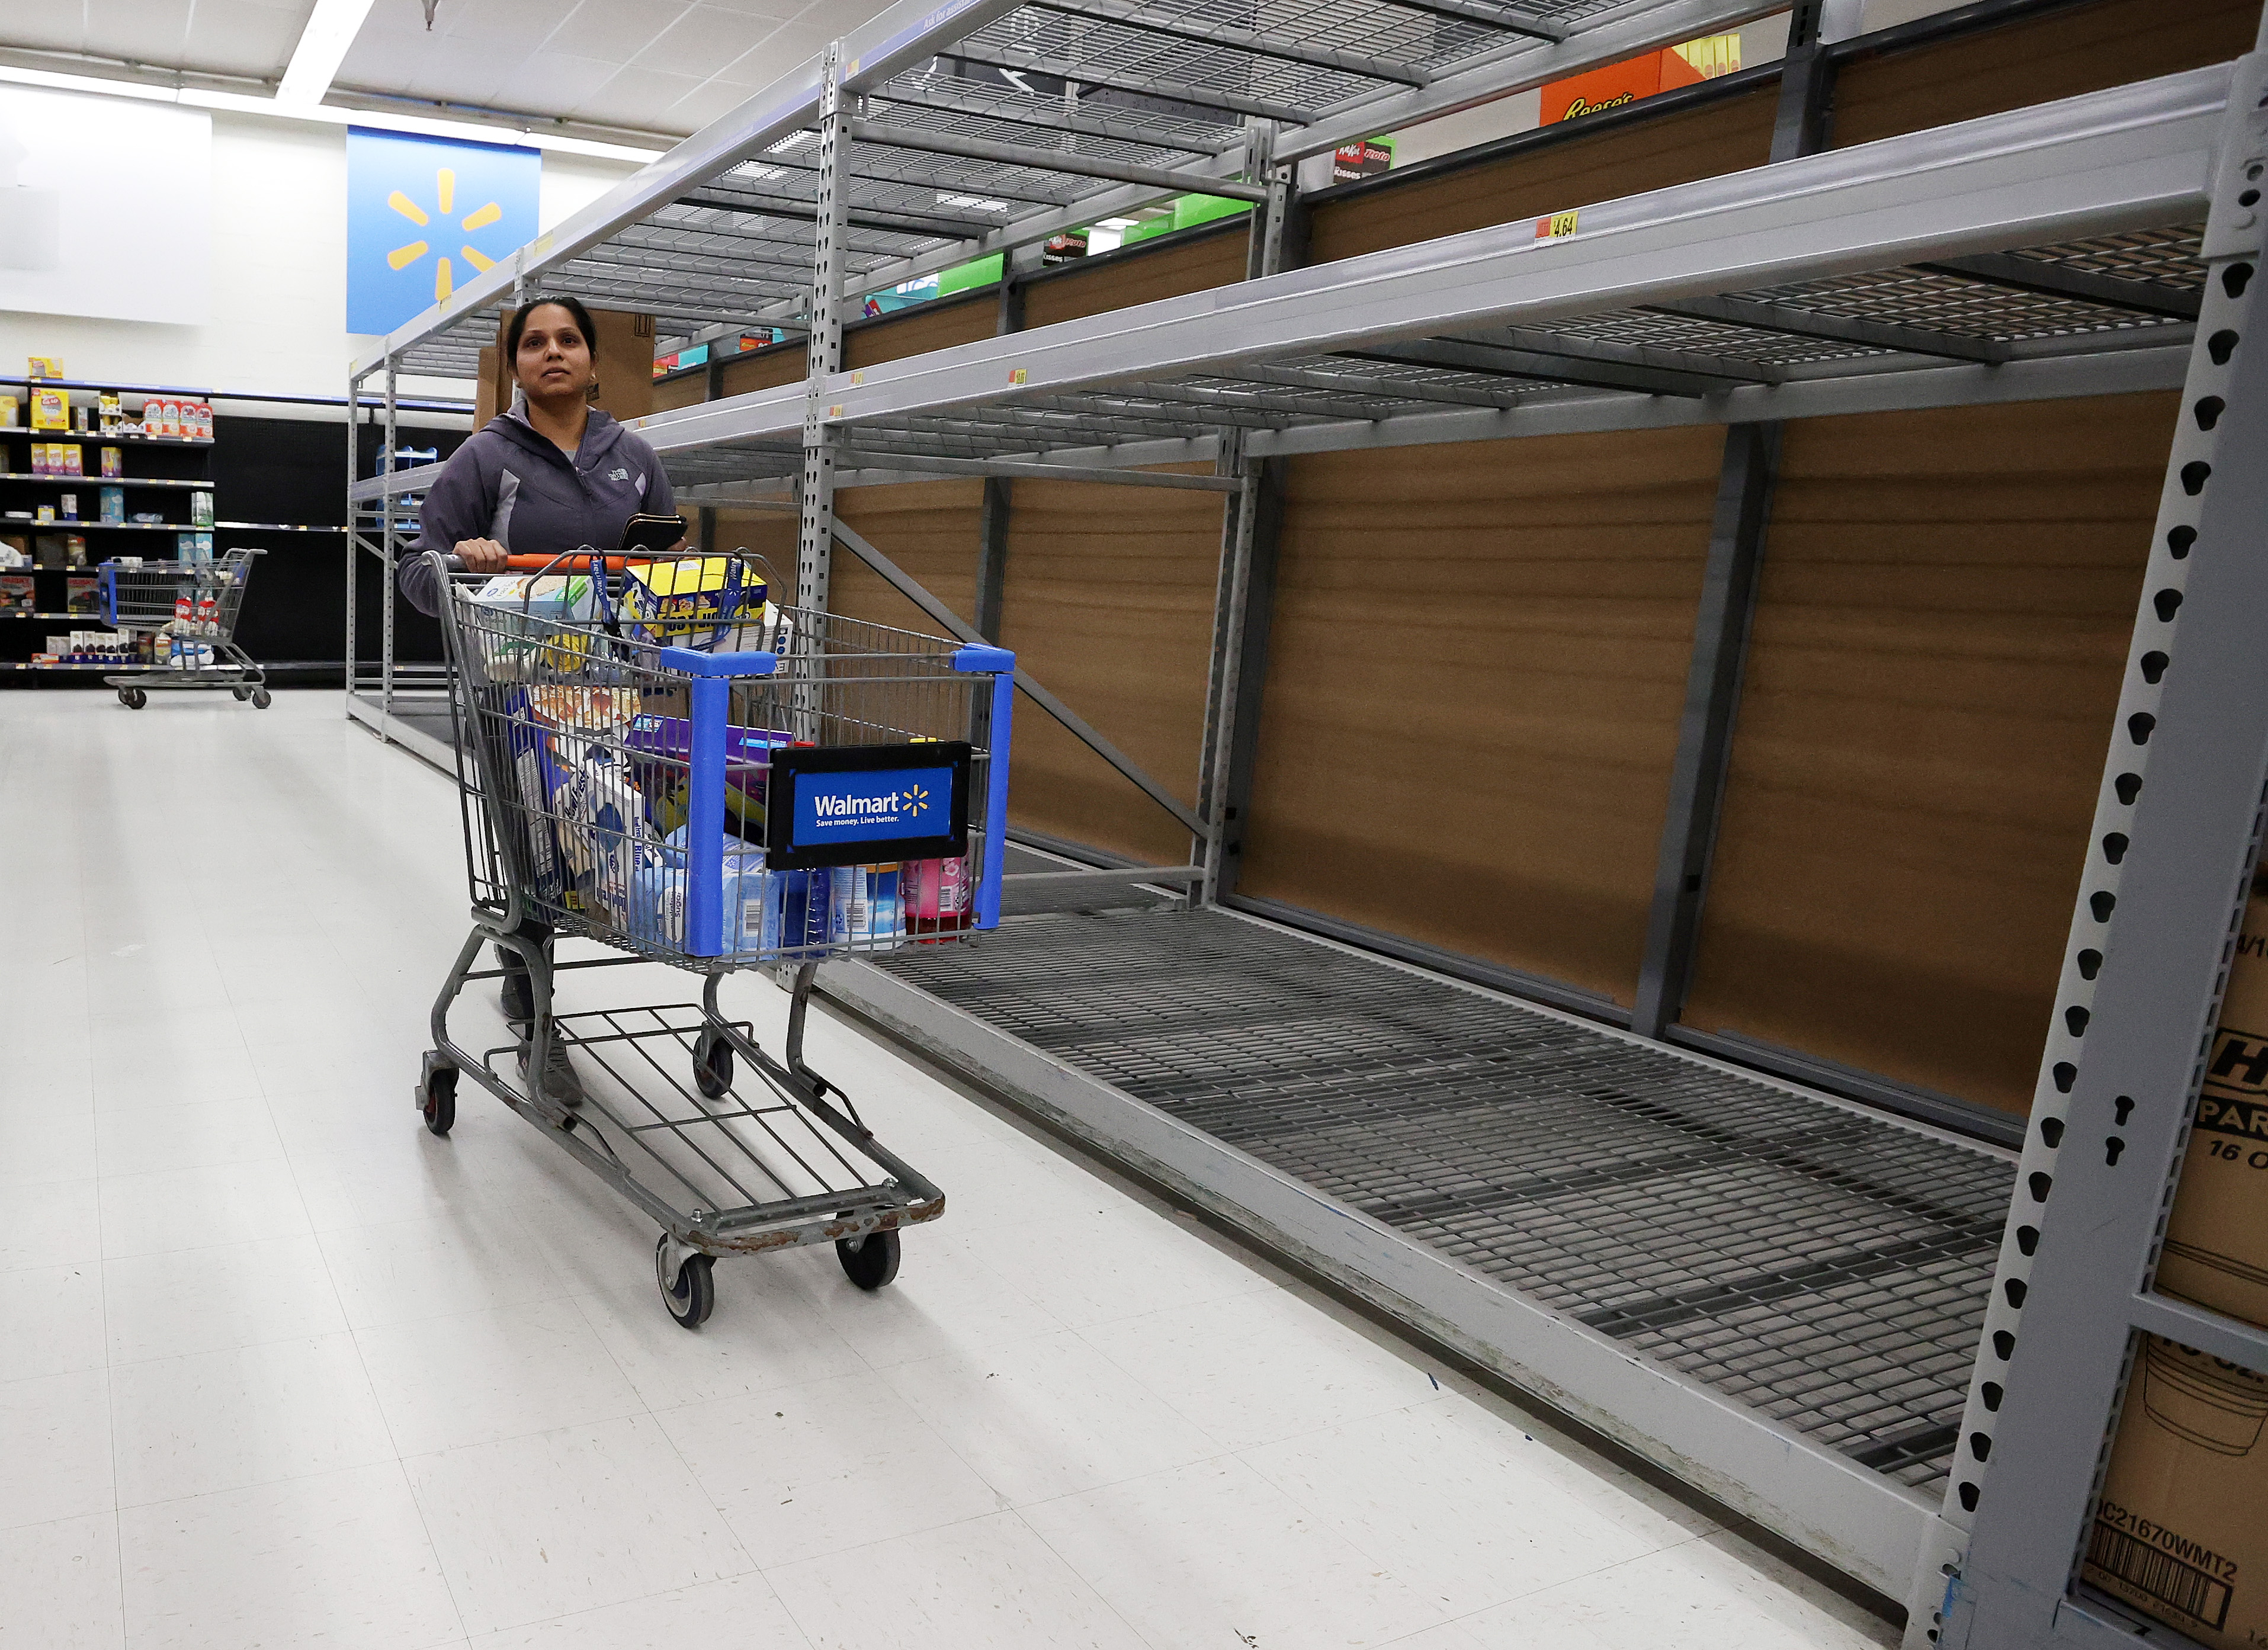 UNIONDALE, NEW YORK, - MARCH 14: As the coronavirus continues to spread across the United States, stores like Walmart had problems keeping up with the high demand for paper goods leading to empty shelves. (Photo by Al Bello/Getty Images)